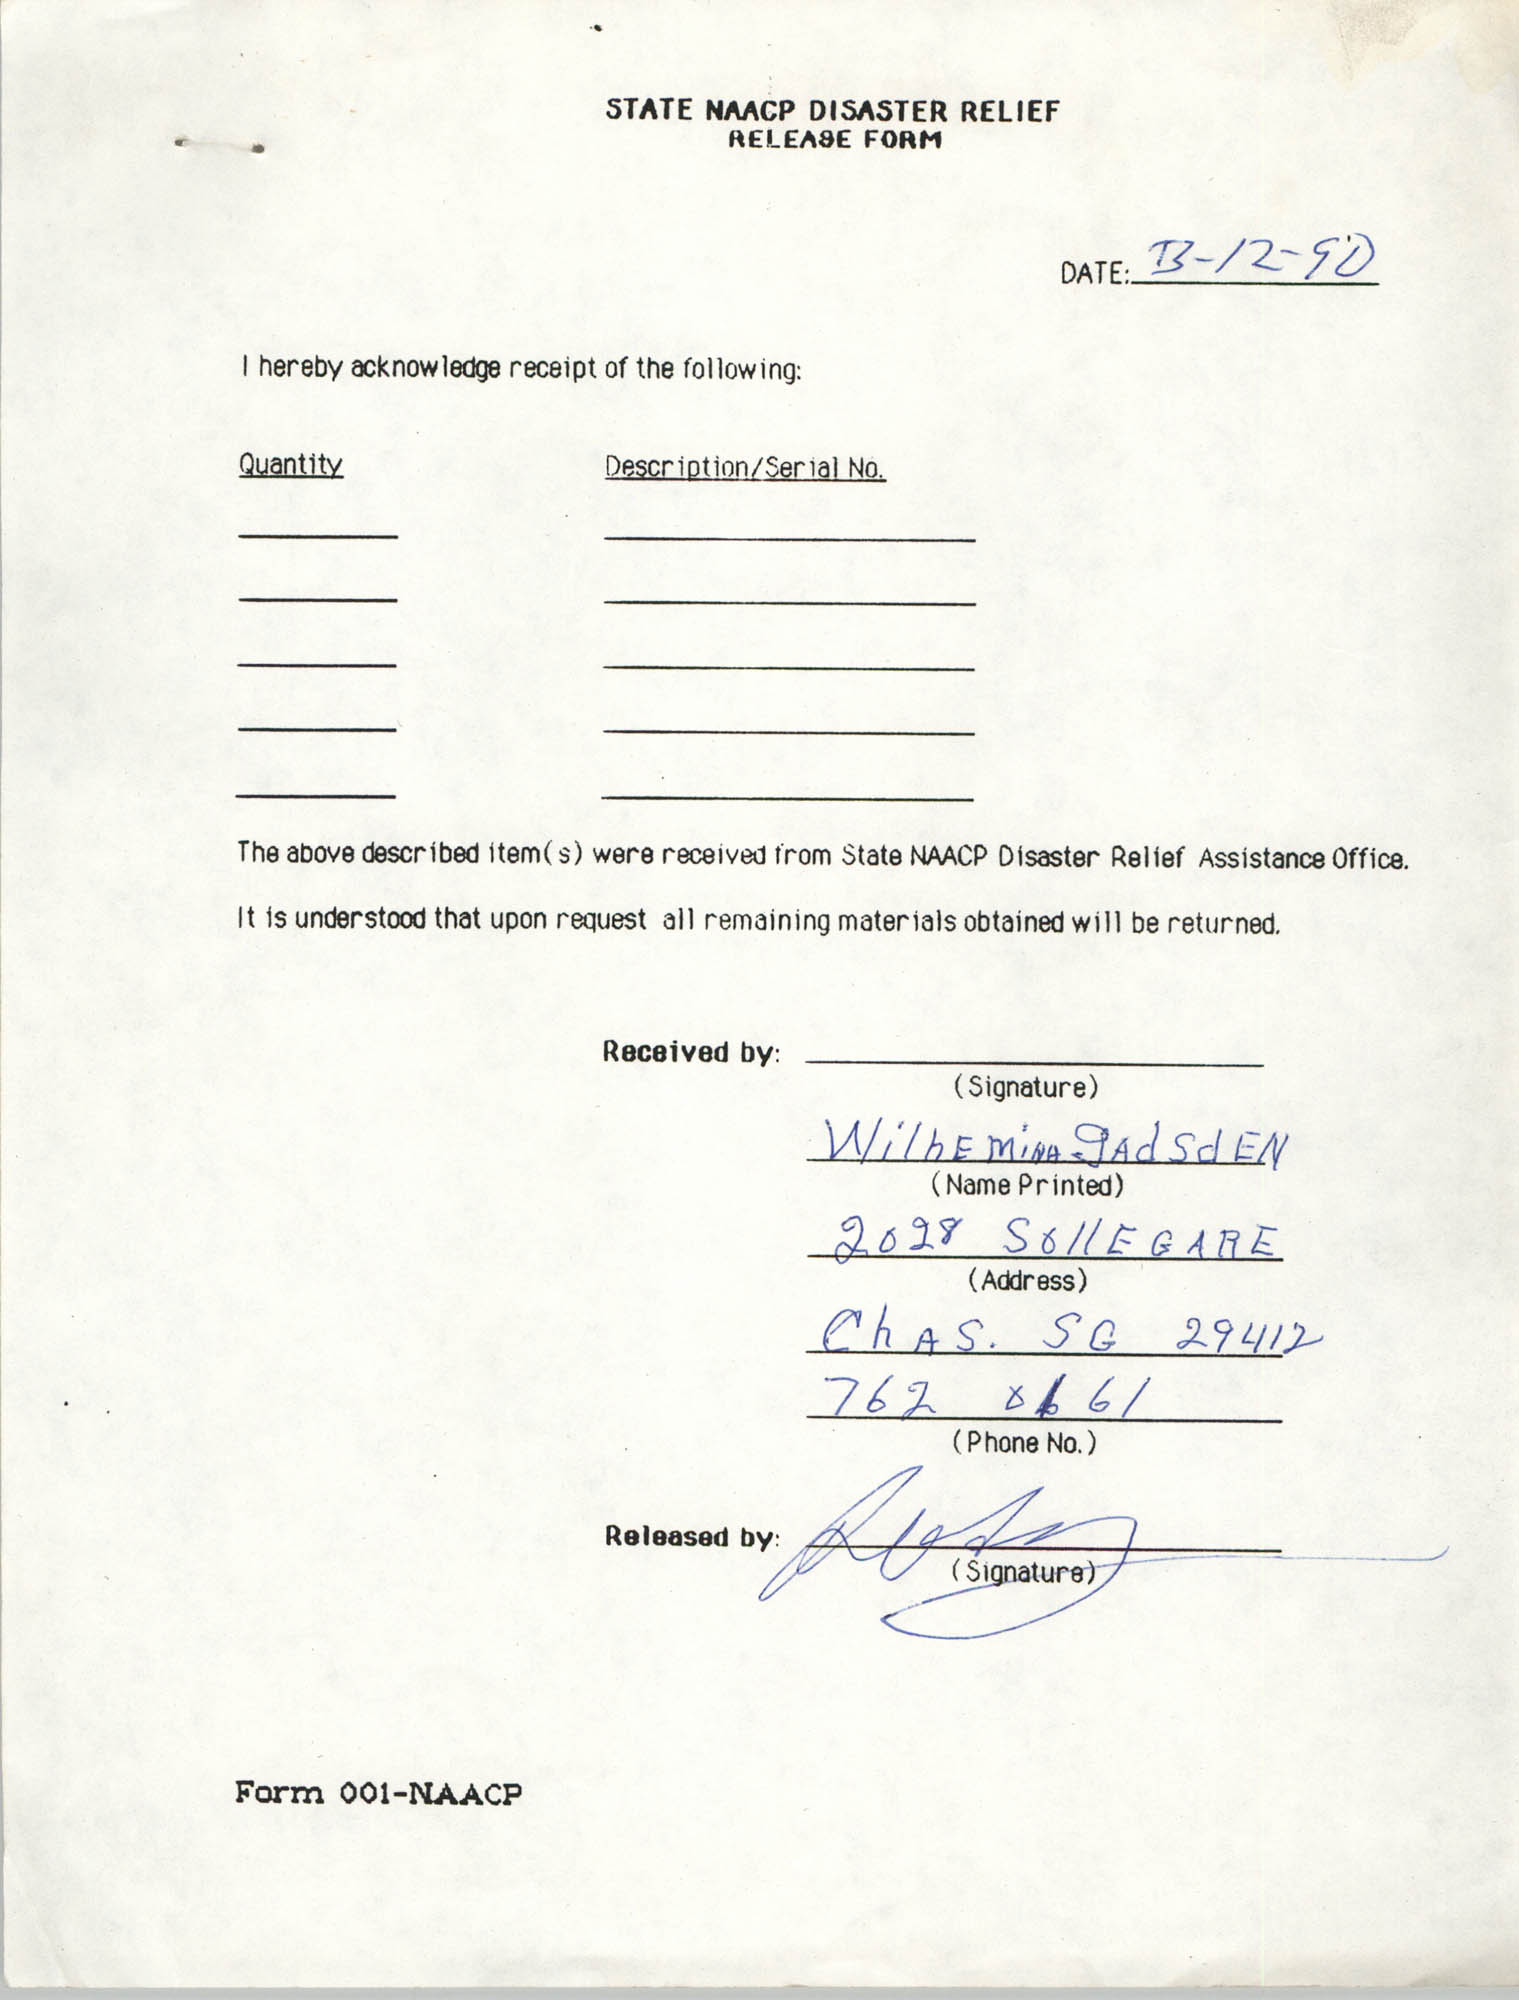 State NAACP Disaster Relief, Hurricane Huge Release Form, 1989, Page 13